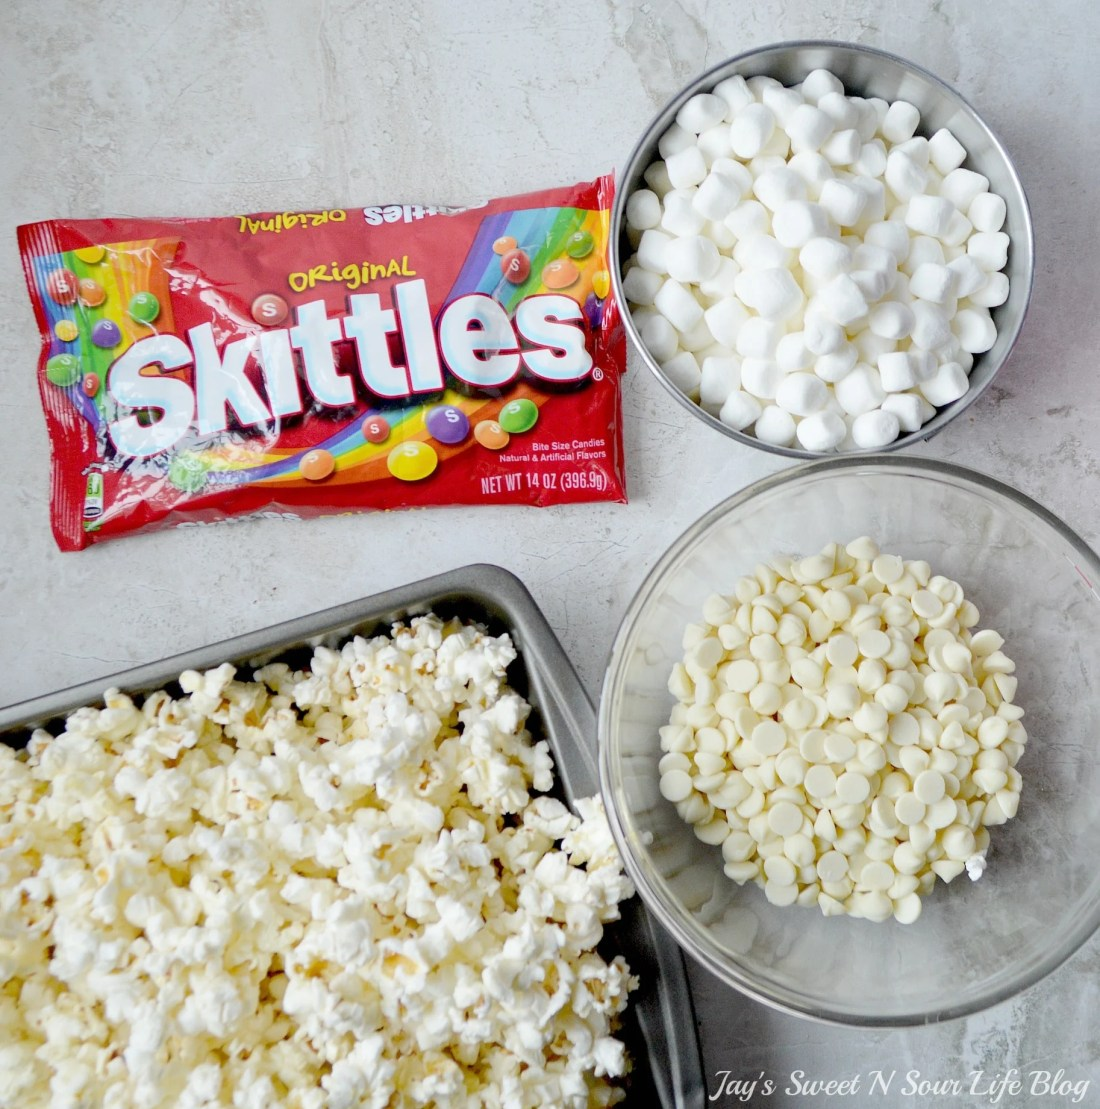 Game Day Skittles Inspired Snacks popcorn ingredients. Game Day Skittles Inspired Snacks that all of your friends and family can enjoy! Recipes include skittles popcorn, football cupcakes and more!